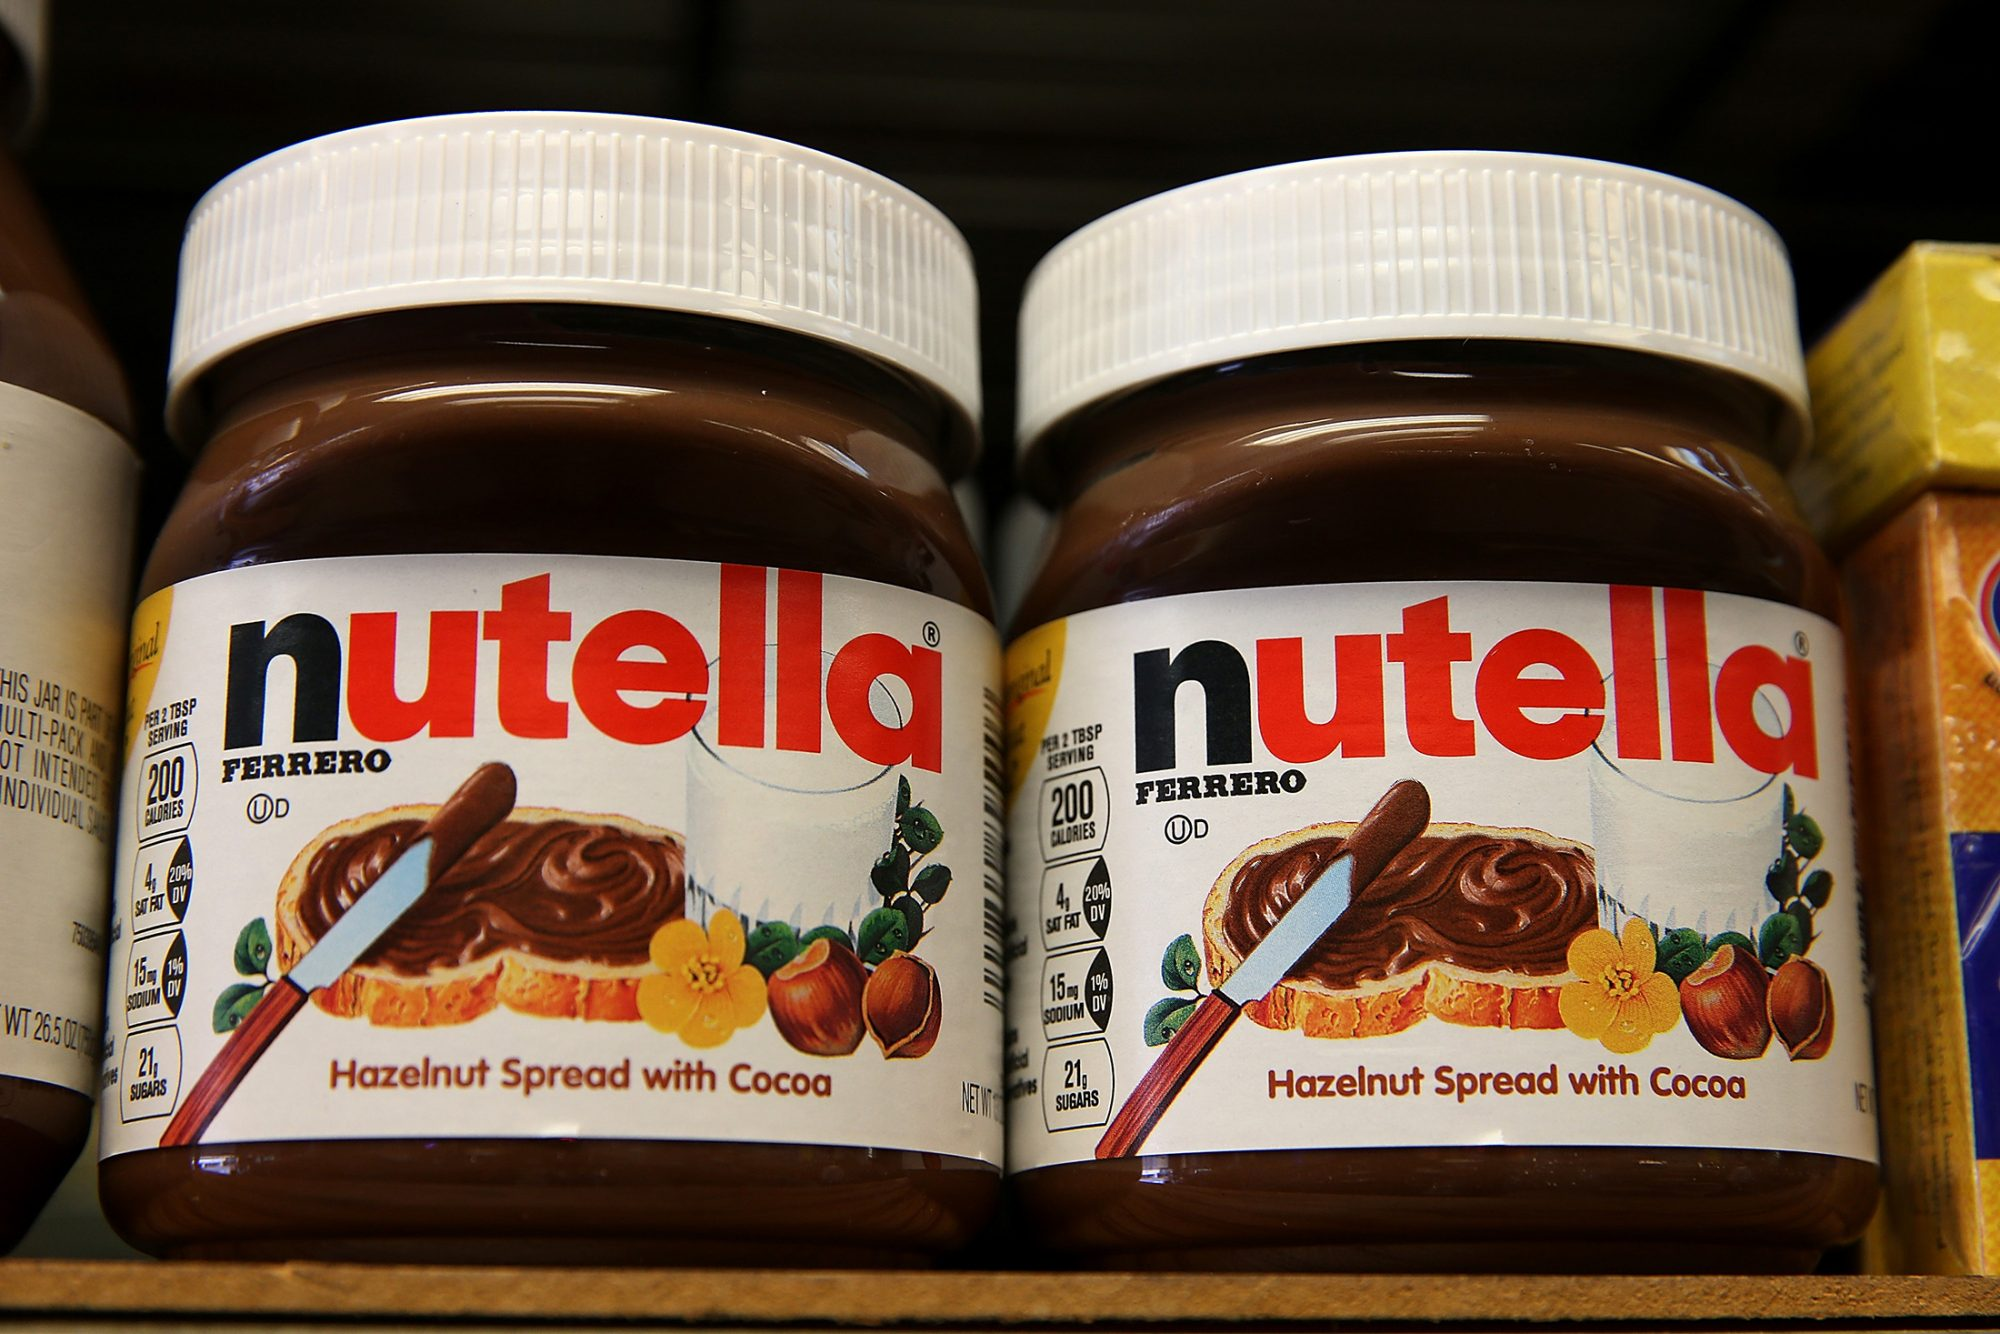 050520_Getty Nutella